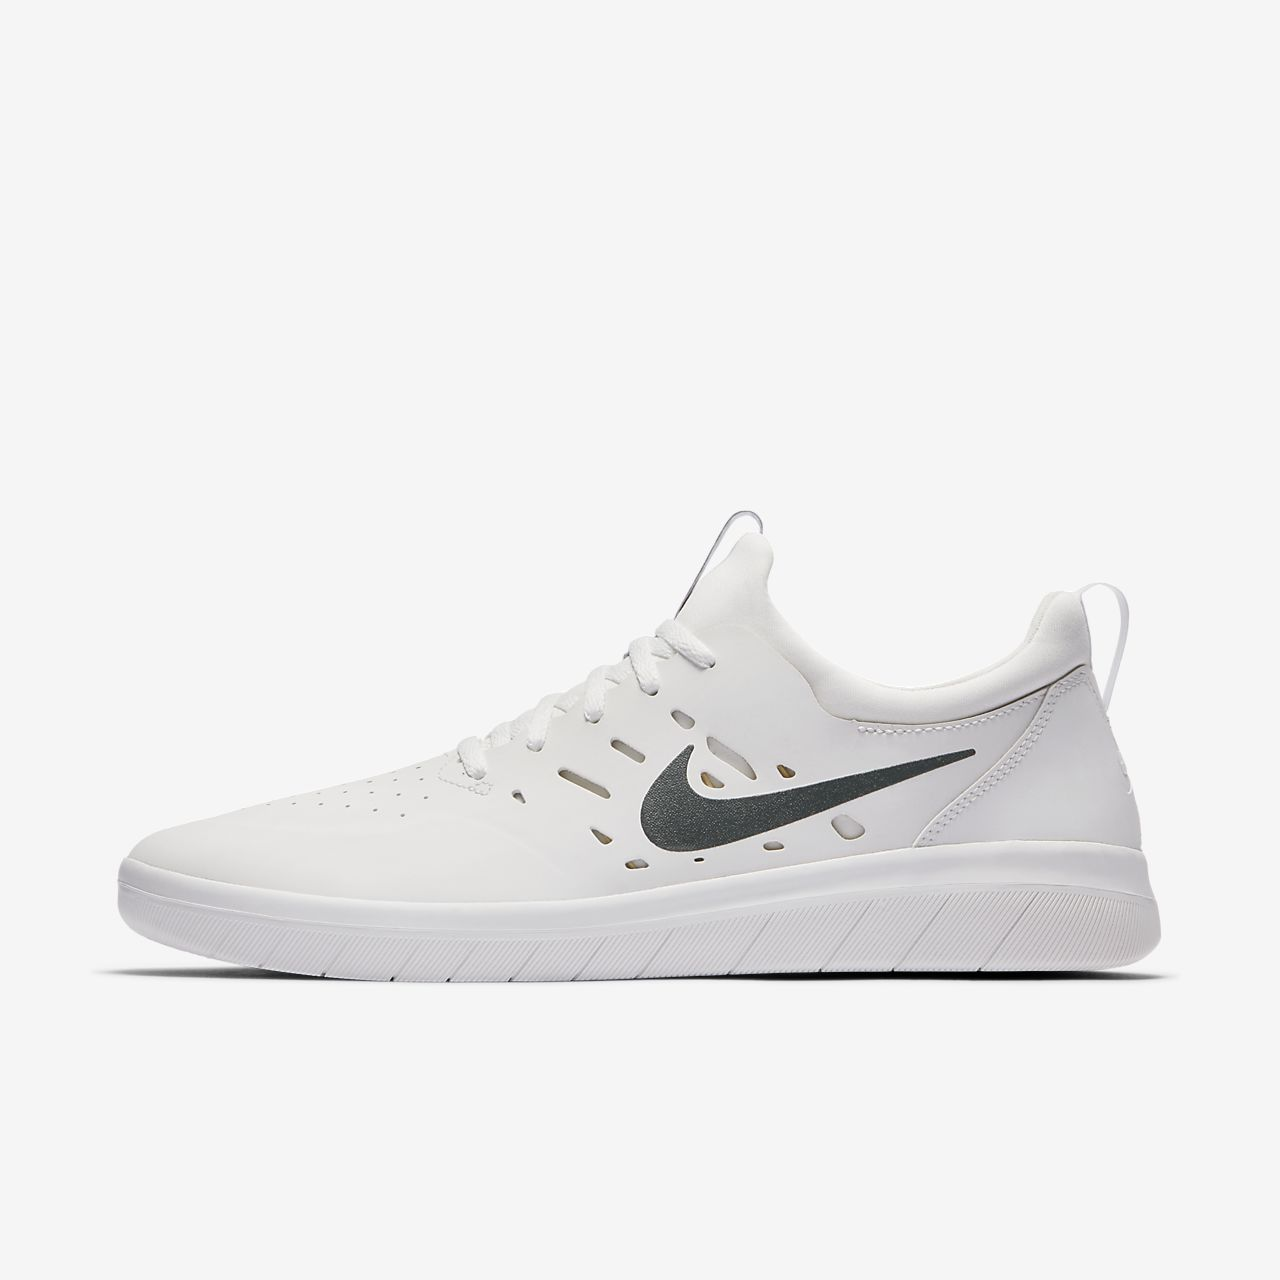 Skate Shoe. Nike SB Nyjah Free. £79.95. Summit White Lemon ... 302aea790b